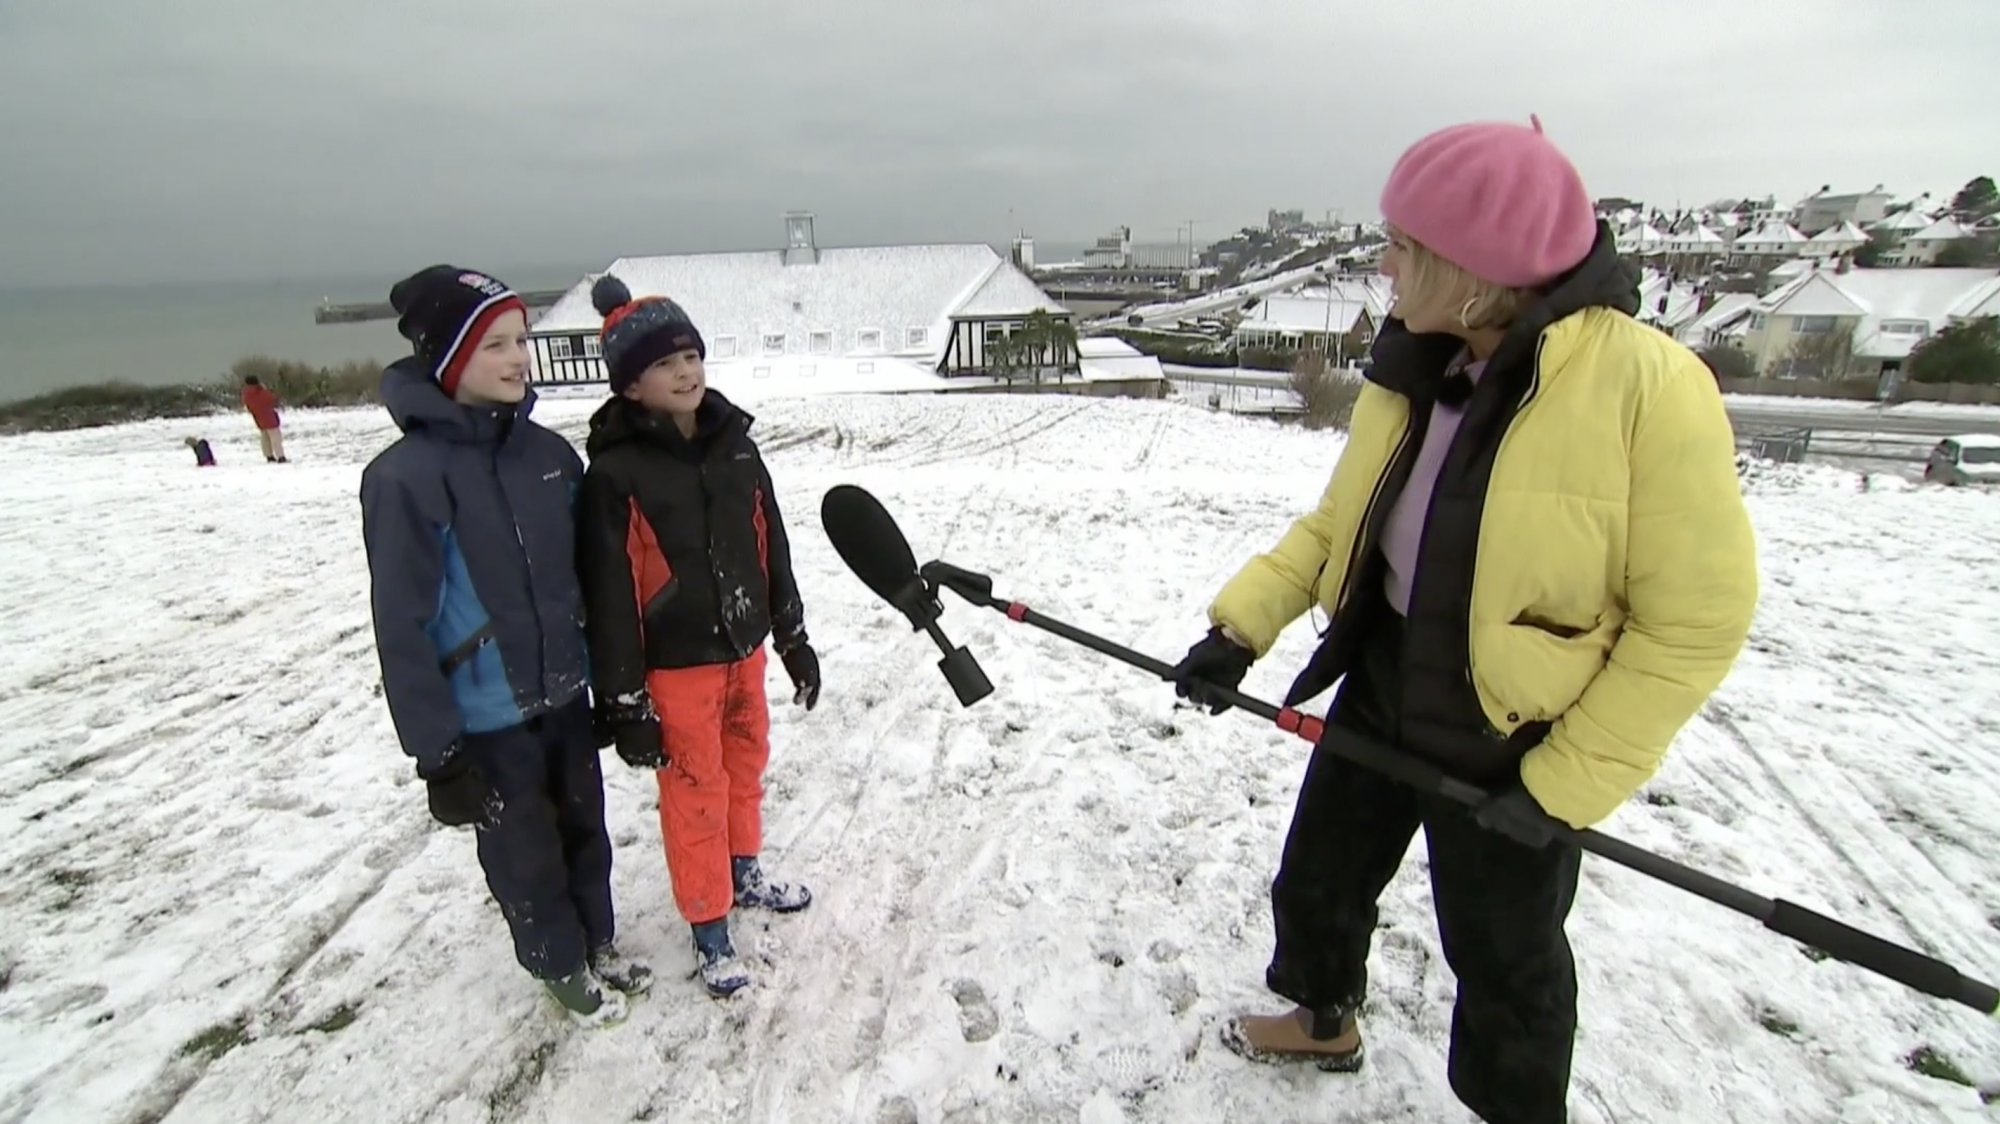 Children make the most of the snow in lockdown Britain